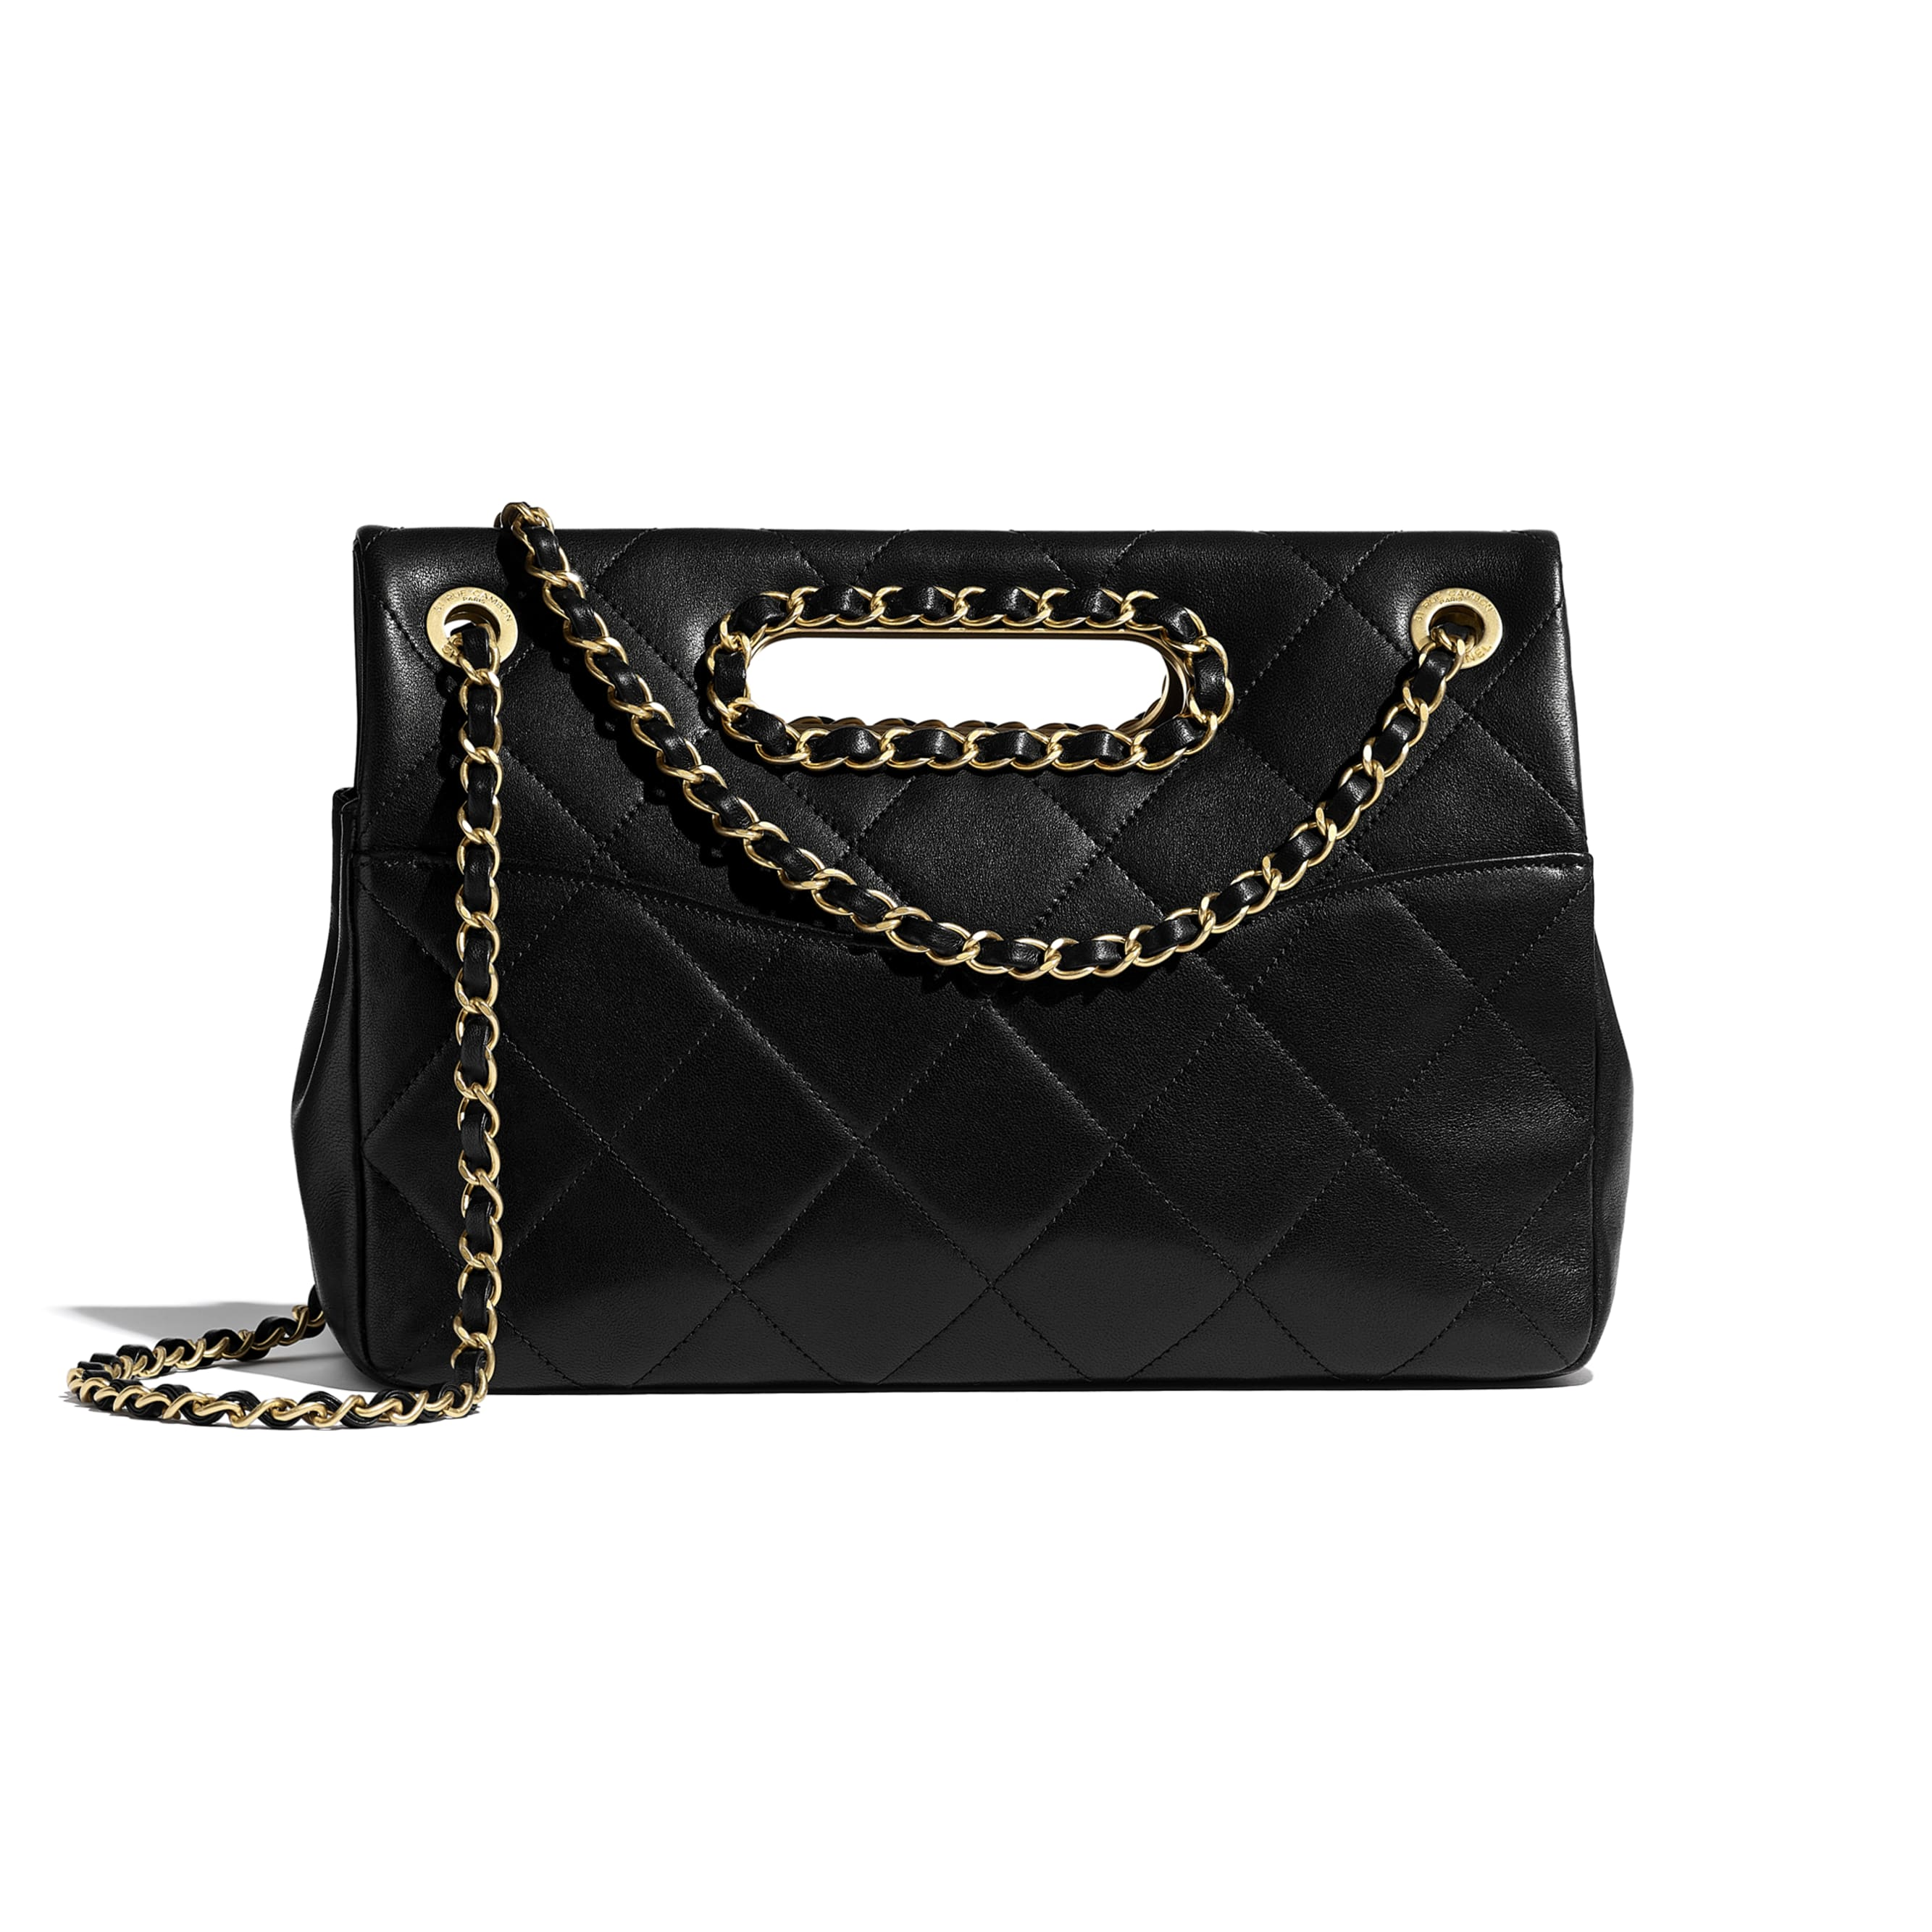 Flap Bag - Black - Lambskin & Gold-Tone Metal - CHANEL - Alternative view - see standard sized version